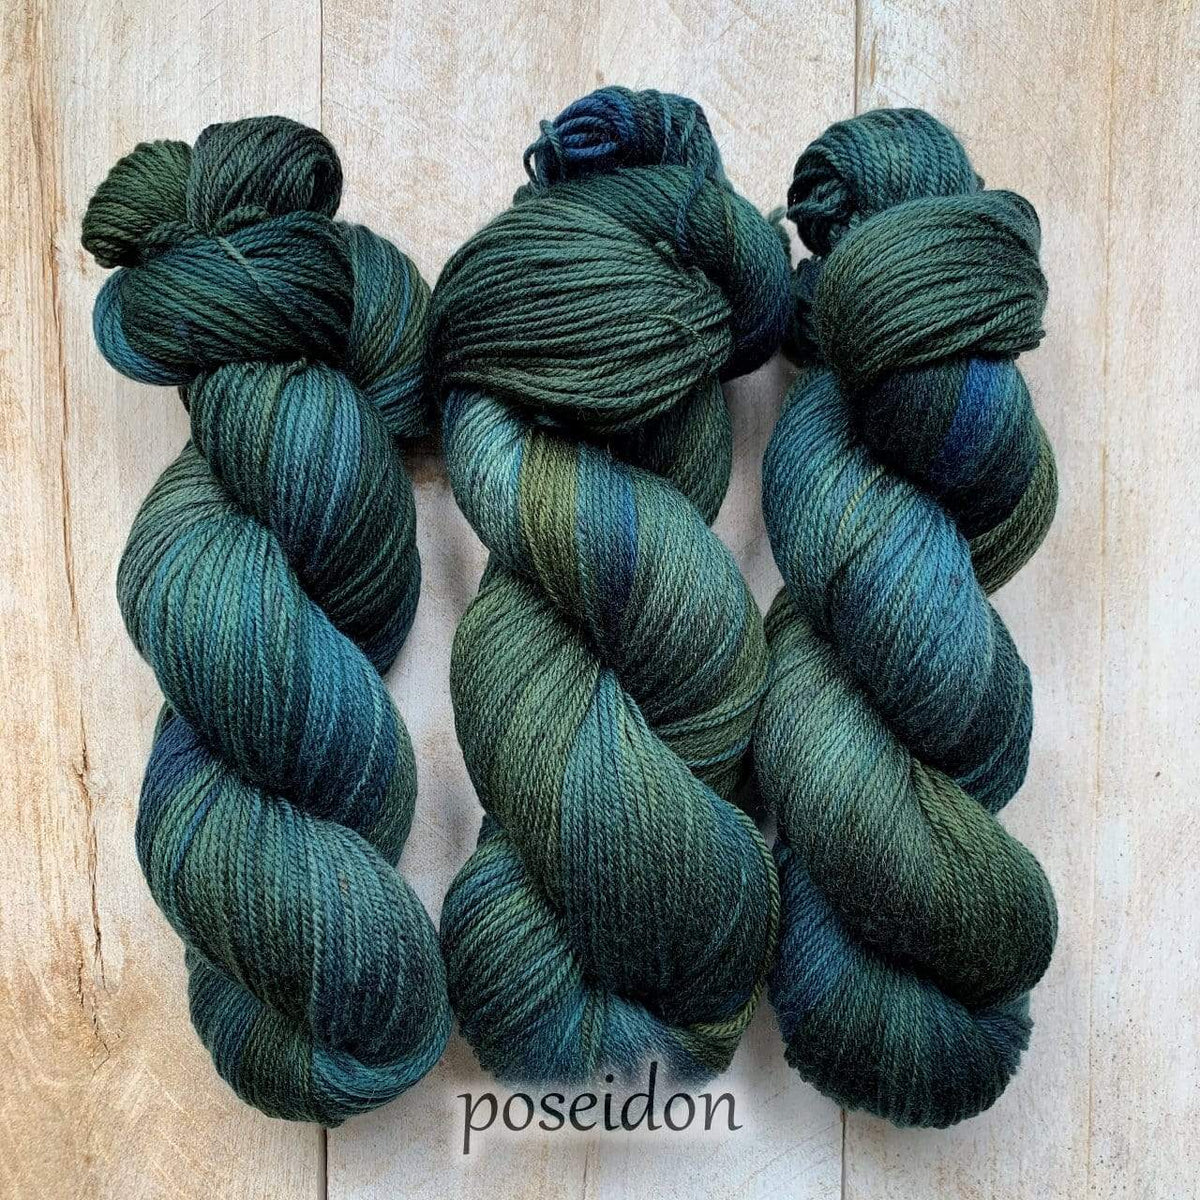 POSEIDON SUPER SOCK